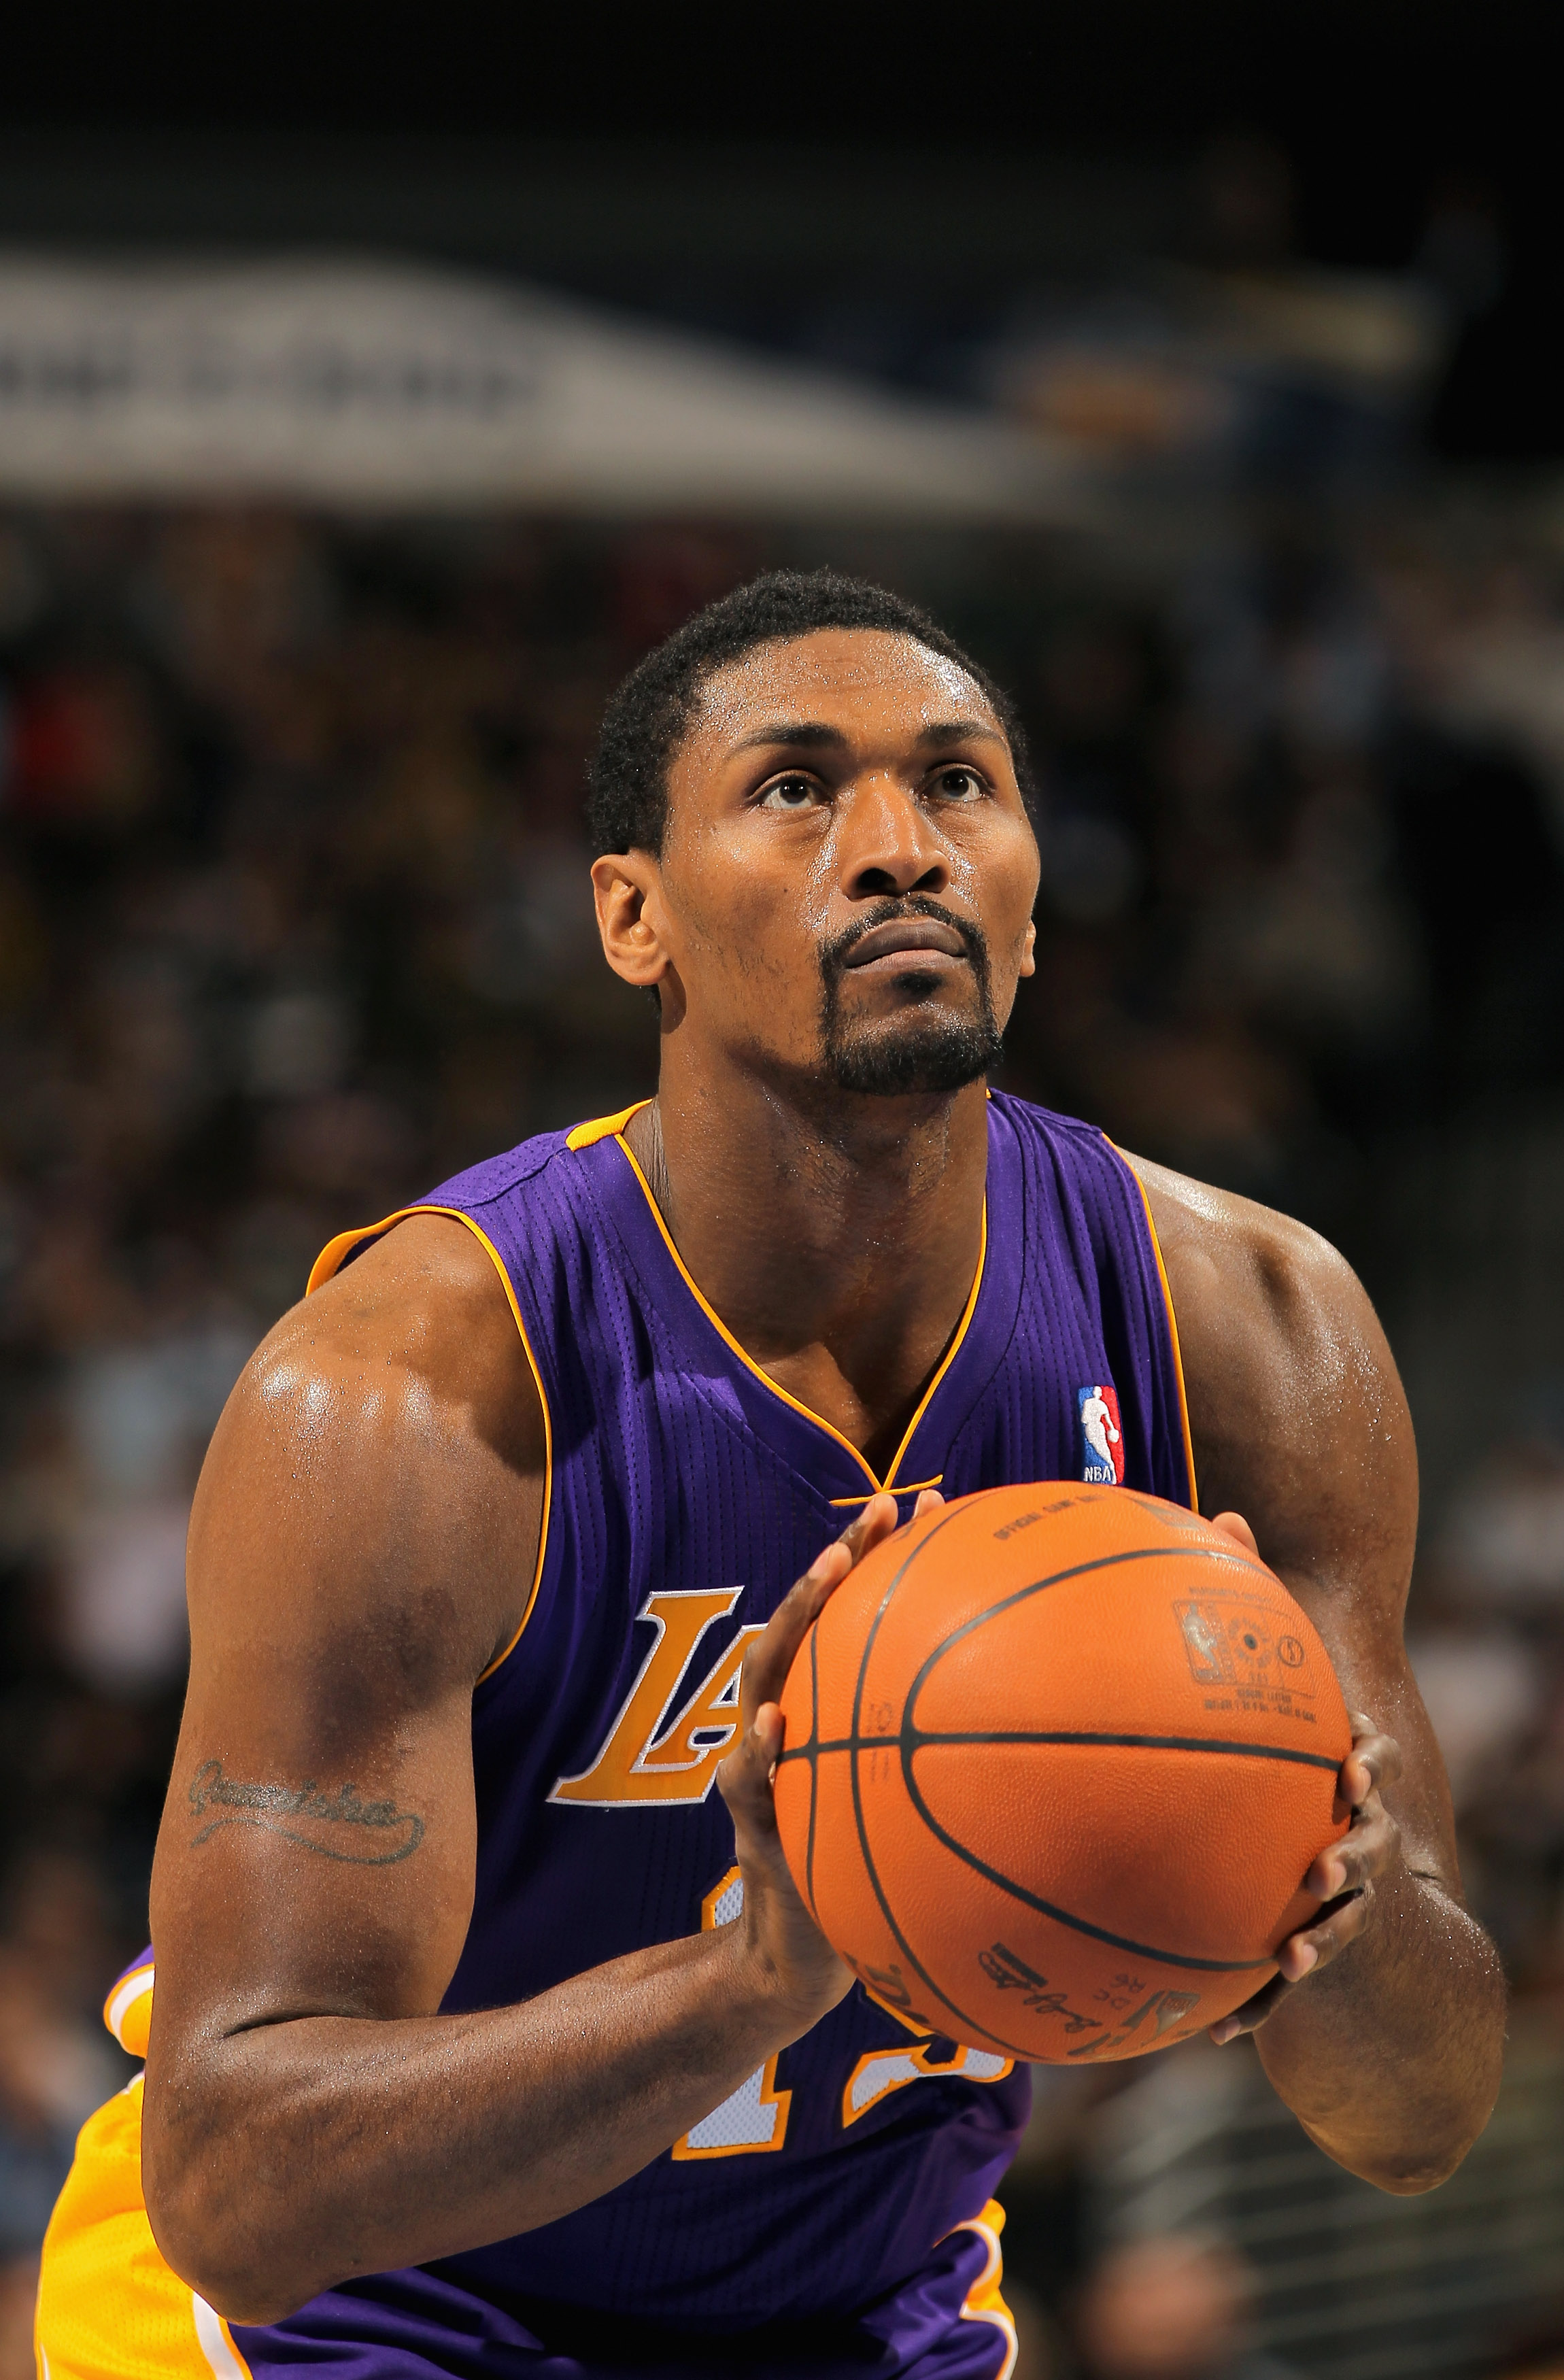 DENVER - NOVEMBER 11:  Ron Artest #15 of the Los Angeles Lakers takes a free throw against the Denver Nuggets at the Pepsi Center on November 11, 2010 in Denver, Colorado. The Nuggets defeated the Lakers 118-112.  NOTE TO USER: User expressly acknowledges